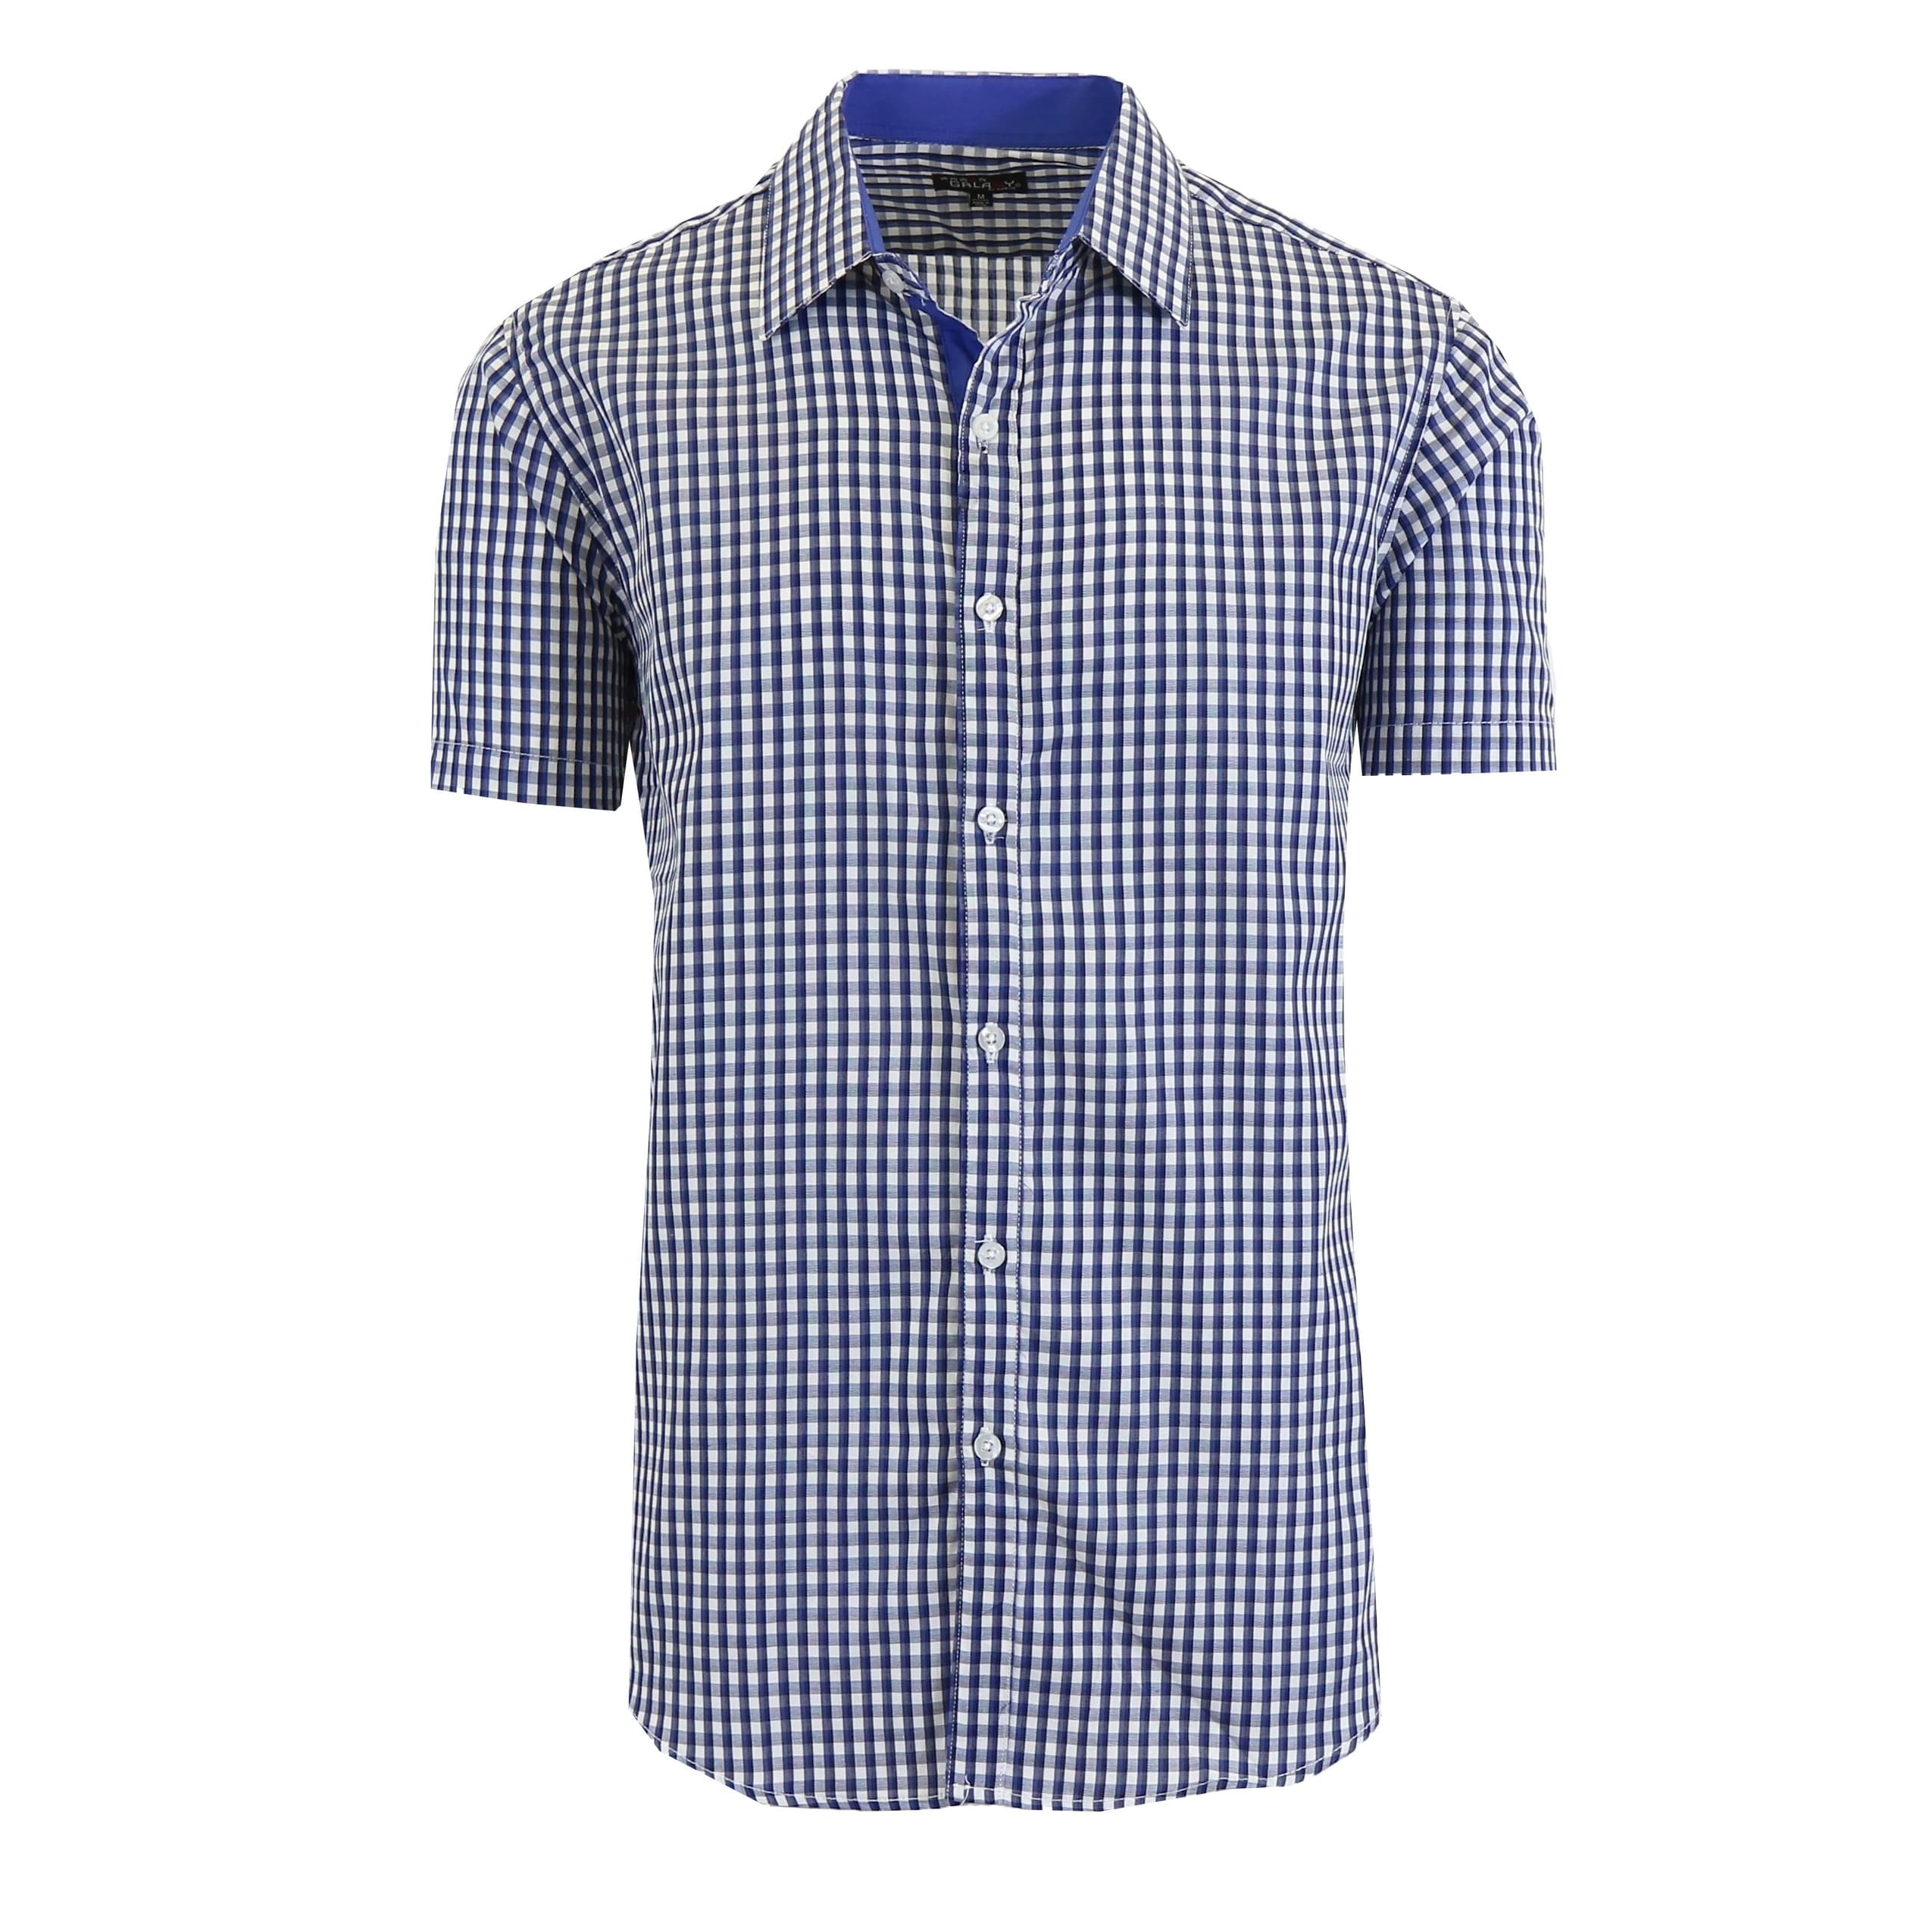 7410892a Shop Galaxy By Harvic Men's Short Sleeve Slim Fit Gingham Casual Dress  Shirts - On Sale - Free Shipping On Orders Over $45 - Overstock - 22422842